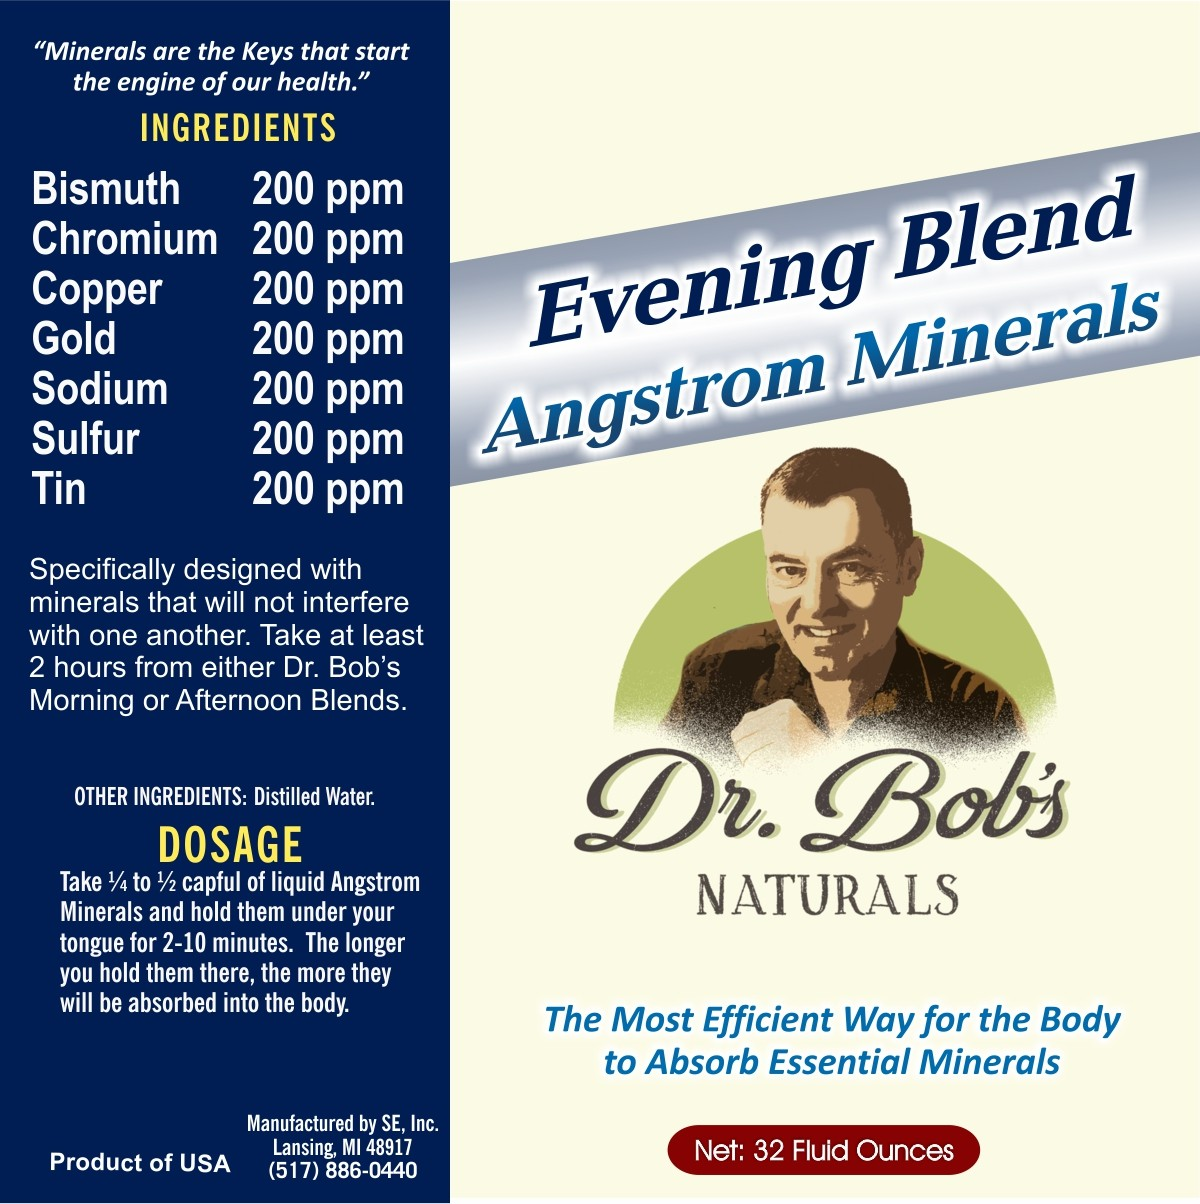 Angstrom Minerals - Evening Blend